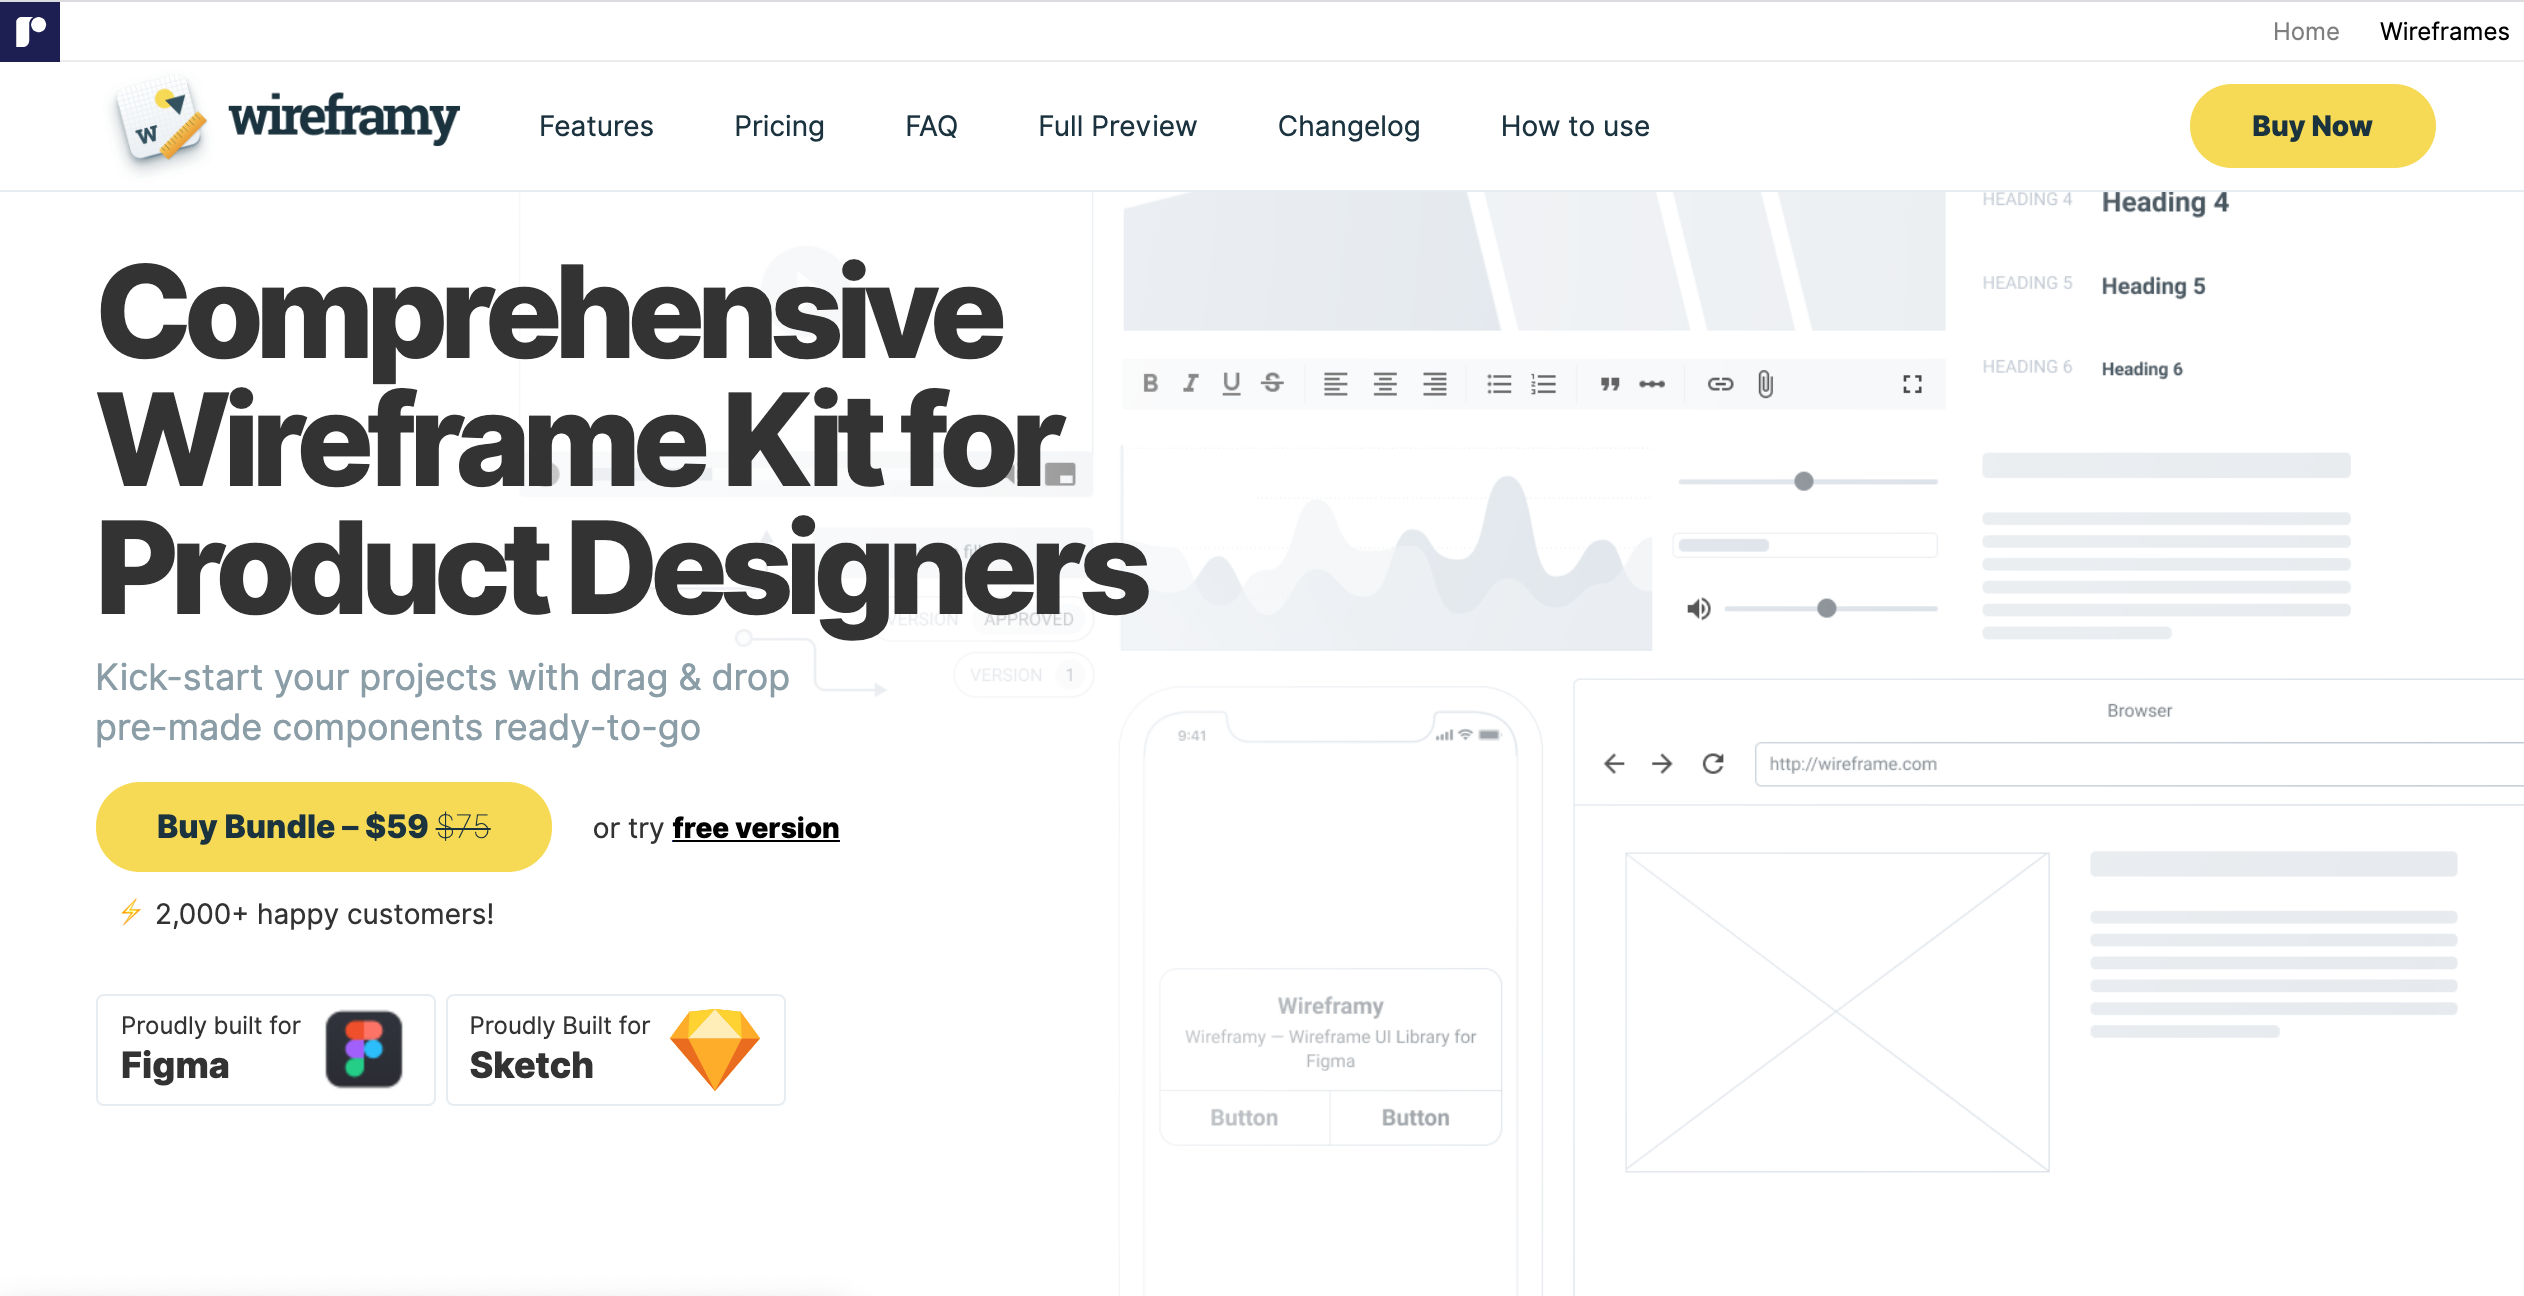 10 Best Wireframe Kit for Sketch/Figma/XD this 2020 from UIGarage